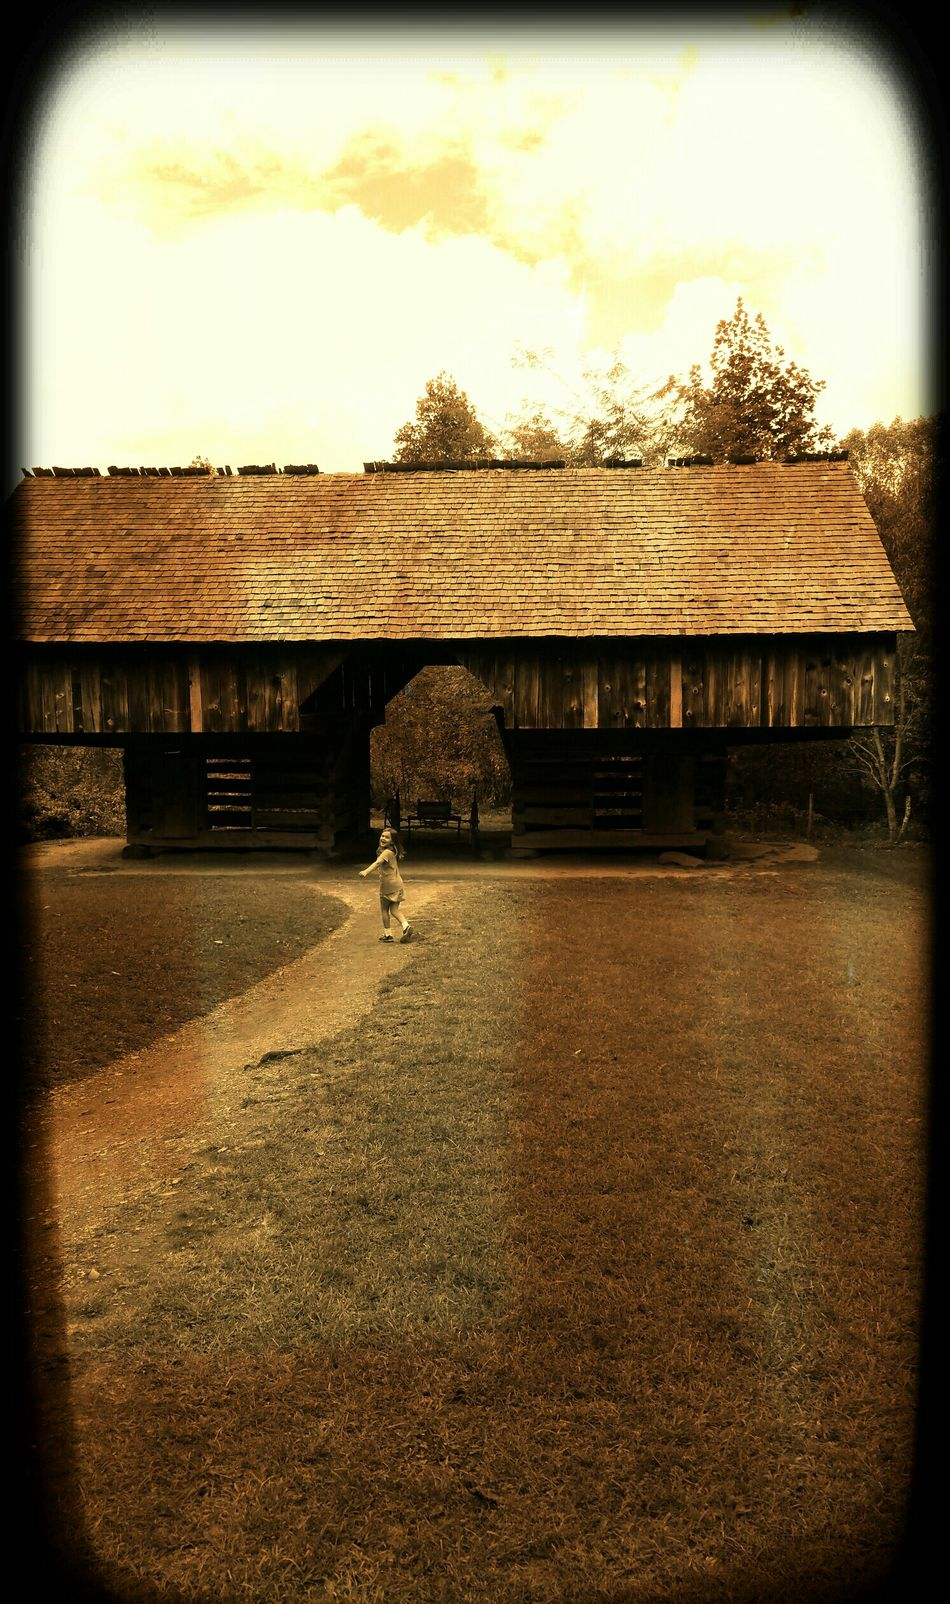 Let Them Be Little Tn National Park Barn Stall Brown Big Smile Girl Exploring Child Making Memories Roof Trail Big World, Little People Old Buildings Wood Structure